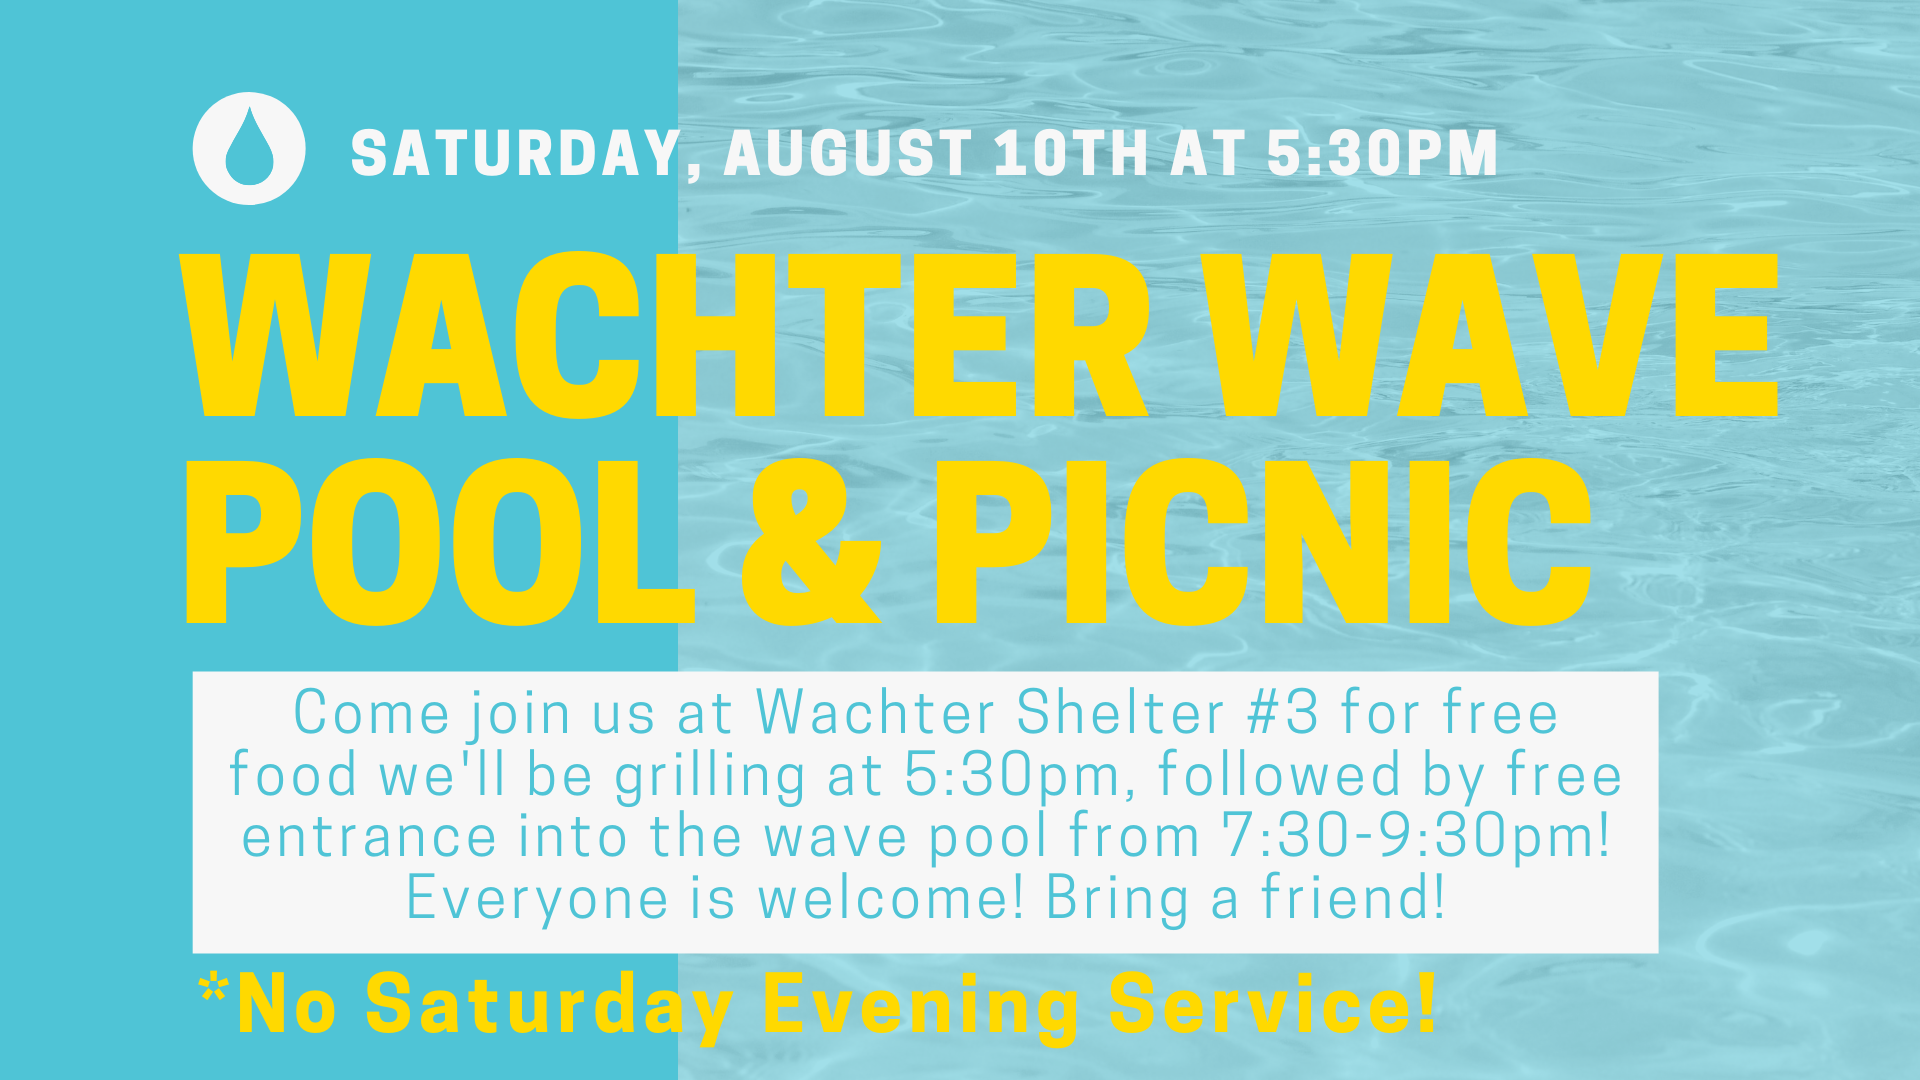 Wachter Pool & Picnic [8.10.19] slide.png